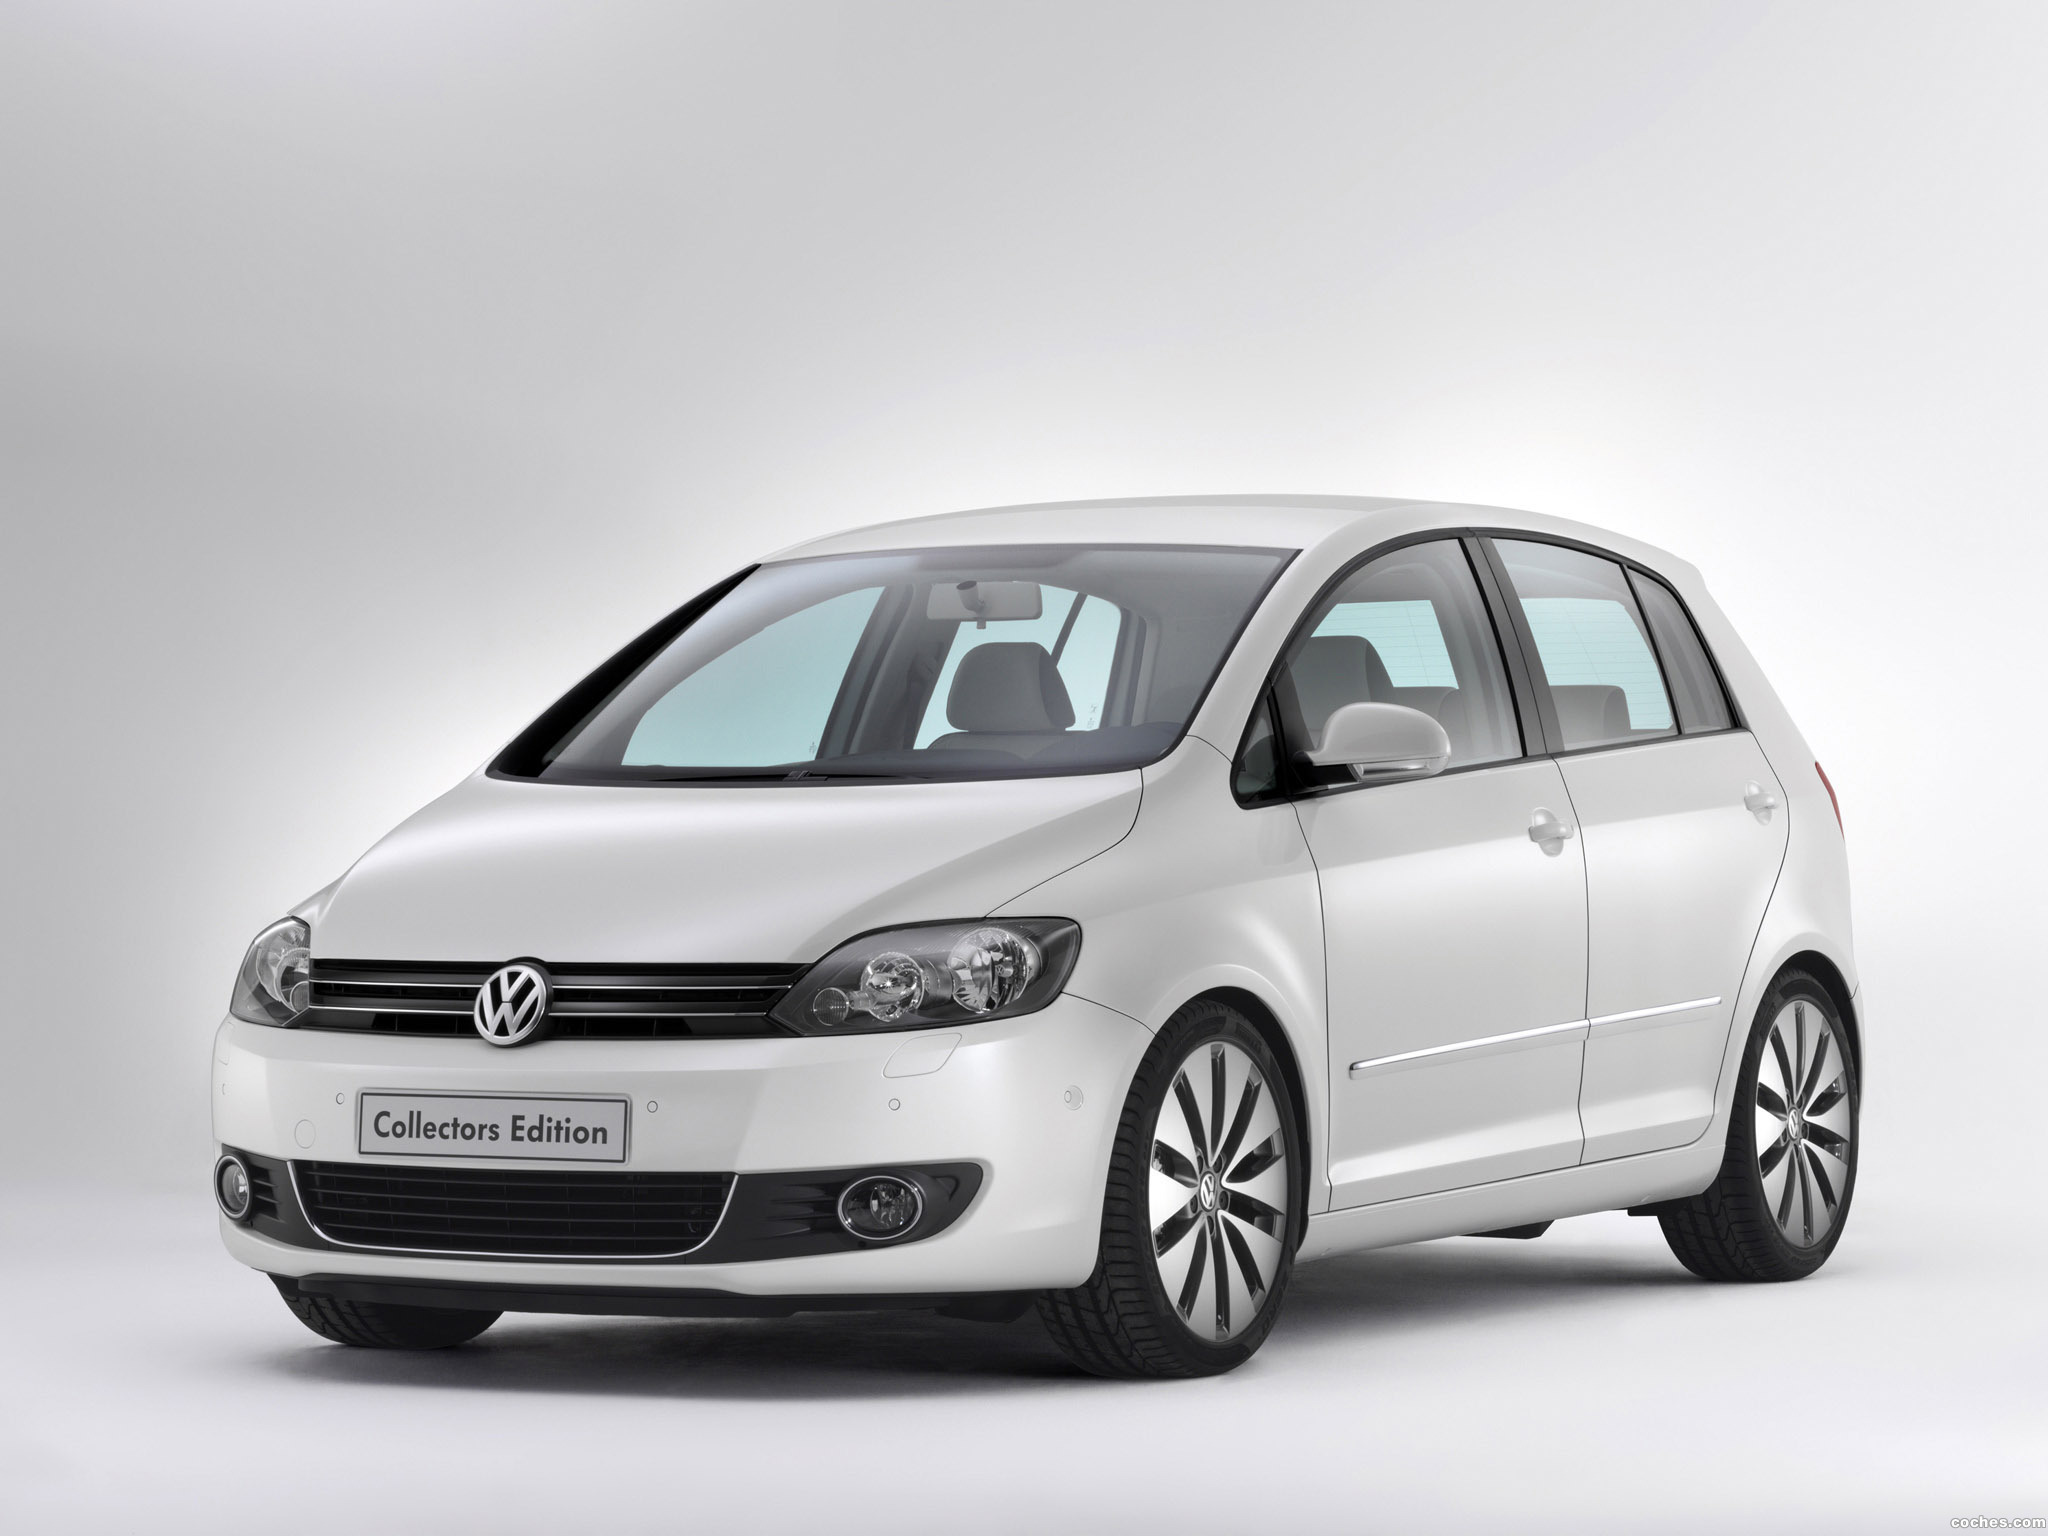 Foto 0 de Volkswagen Golf Plus VI Collectors Edition 2009